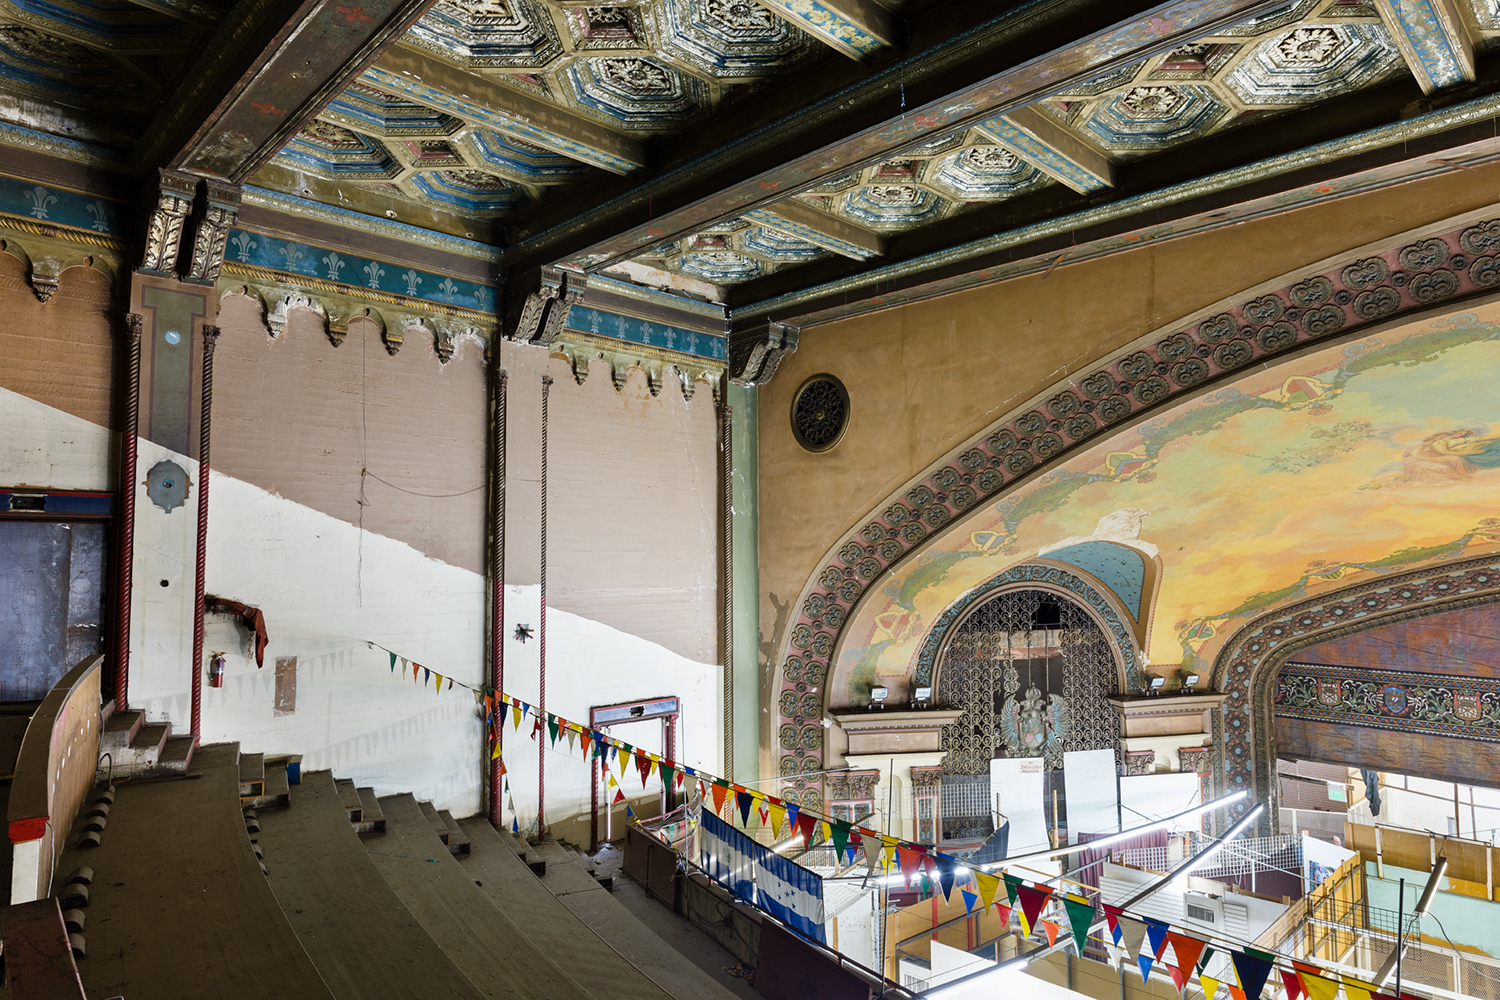 westlake theater photos inside the historic space before